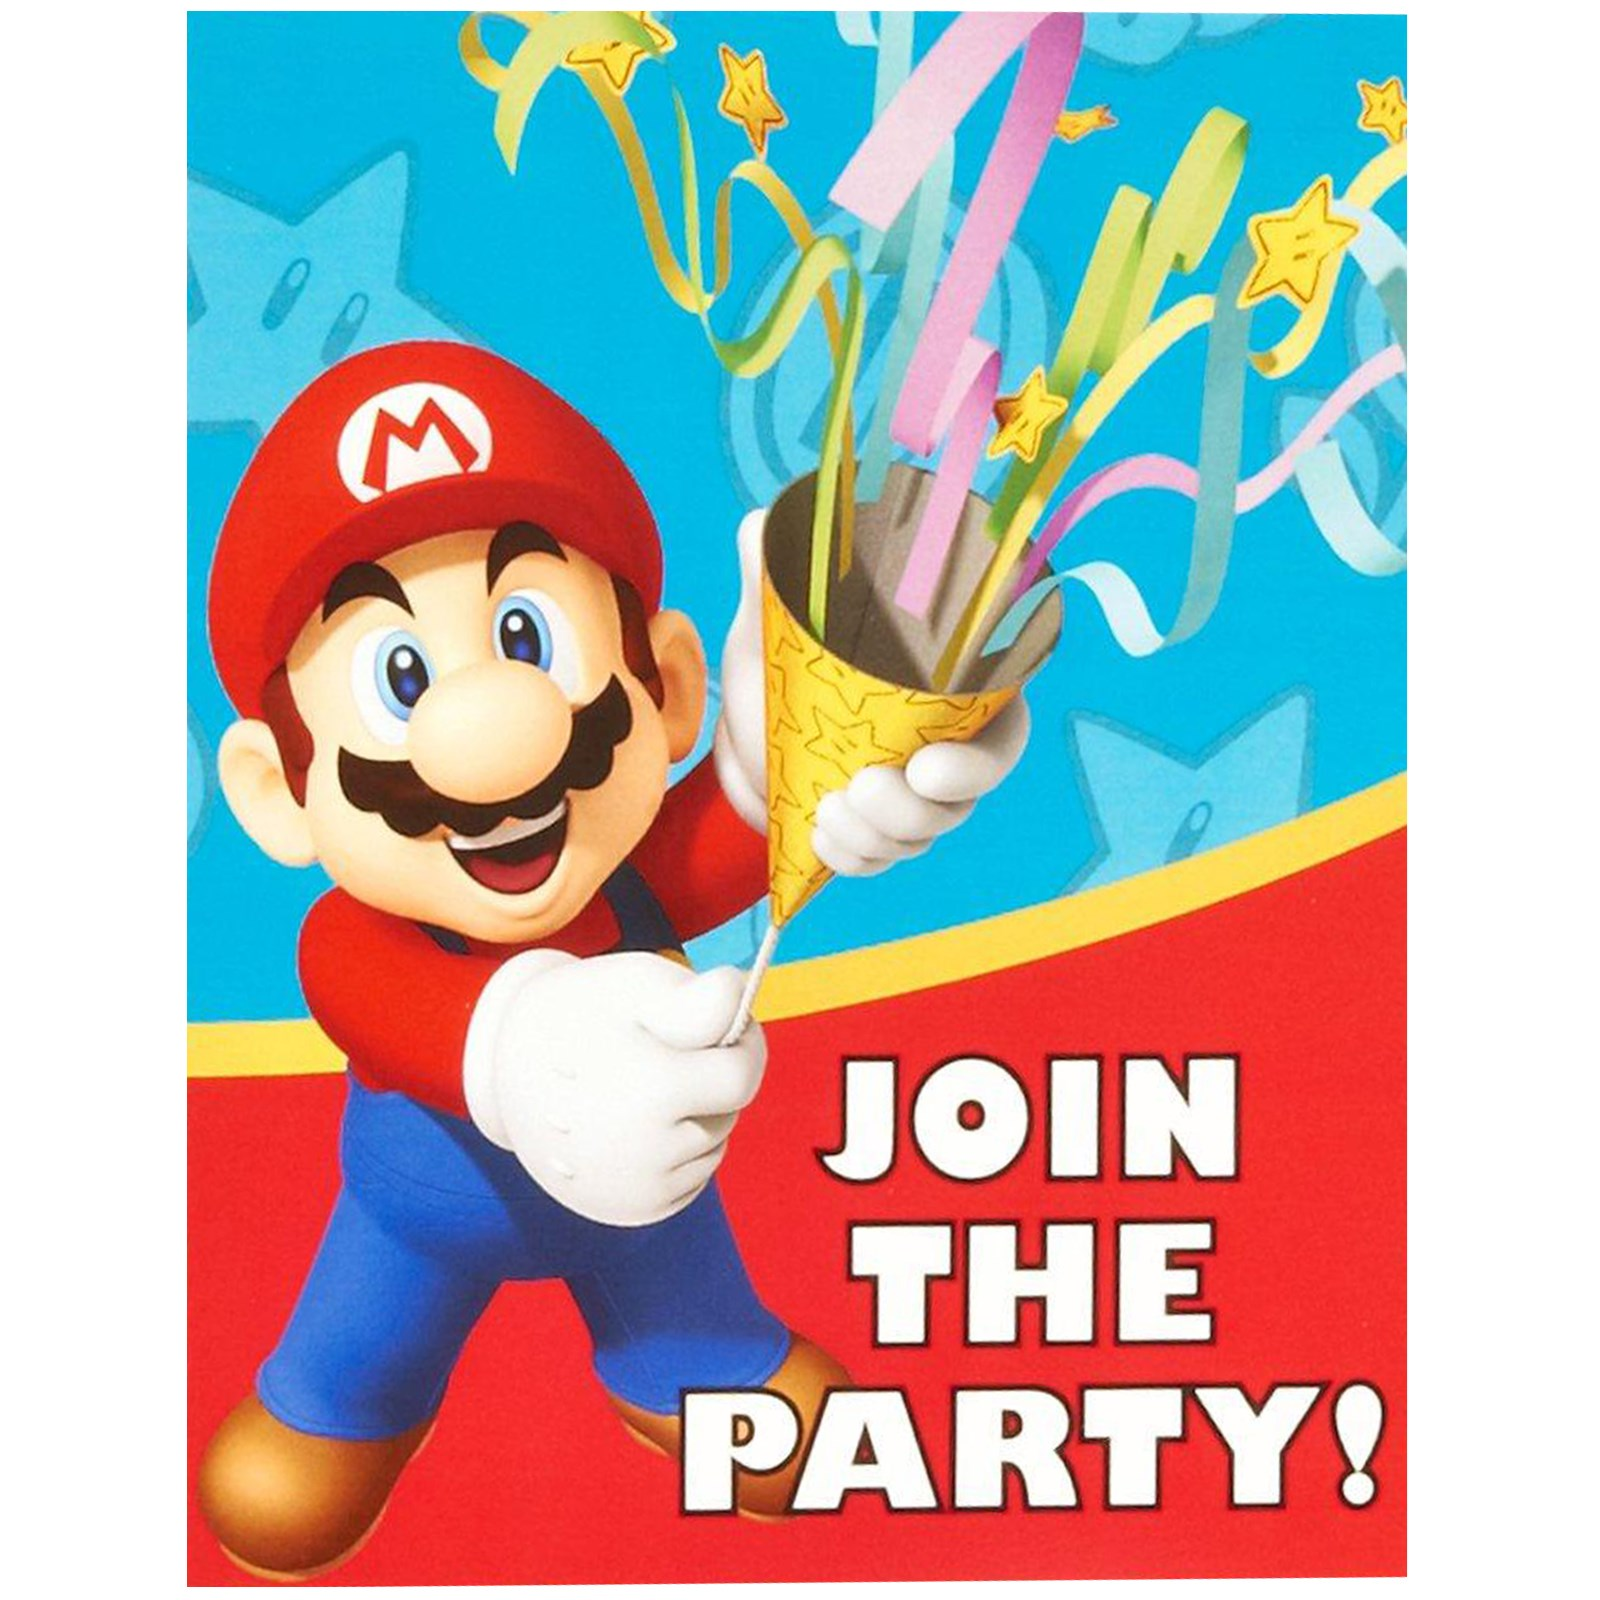 Super mario party invitations birthdayexpress default image super mario party invitations monicamarmolfo Gallery